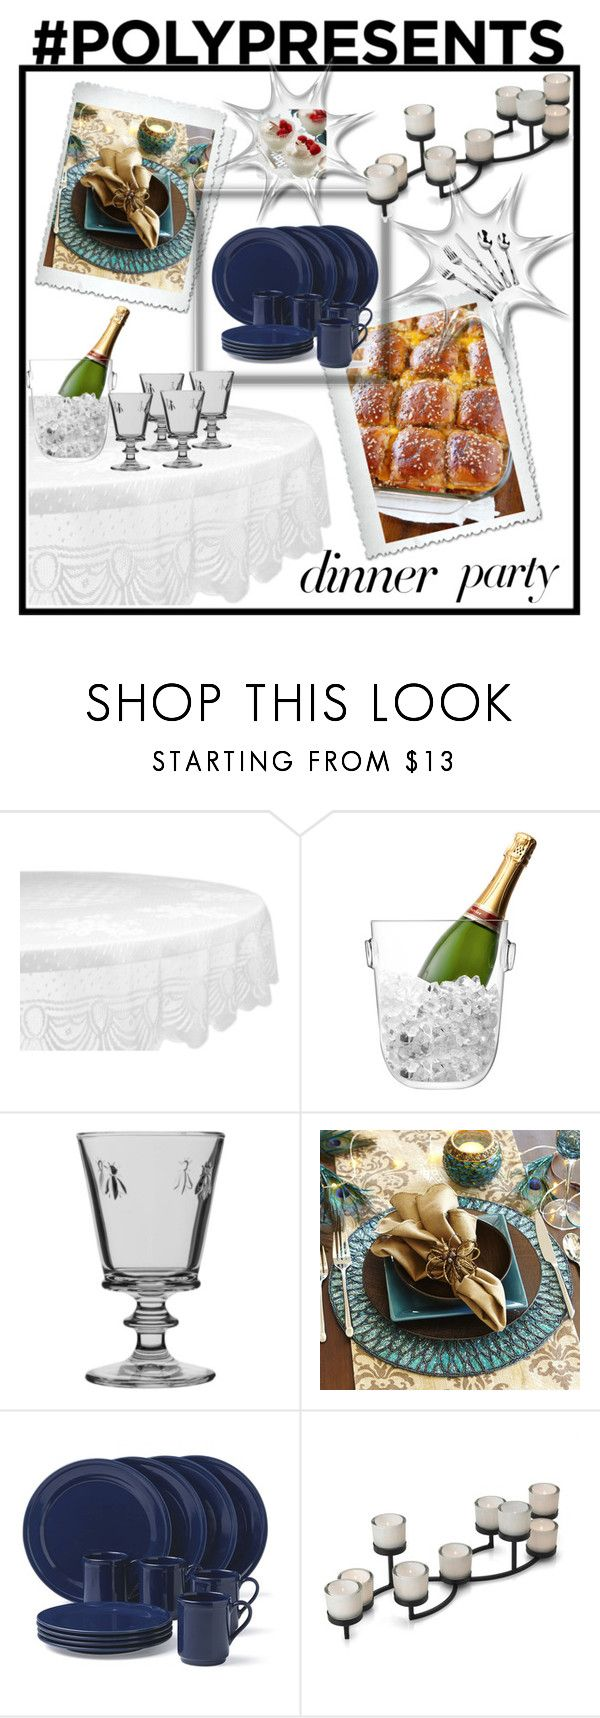 """""""#PolyPresents: Dinner Party"""" by husic-m ❤ liked on Polyvore featuring interior, interiors, interior design, home, home decor, interior decorating, Design Imports, LSA International, La Rochère and Pier 1 Imports"""